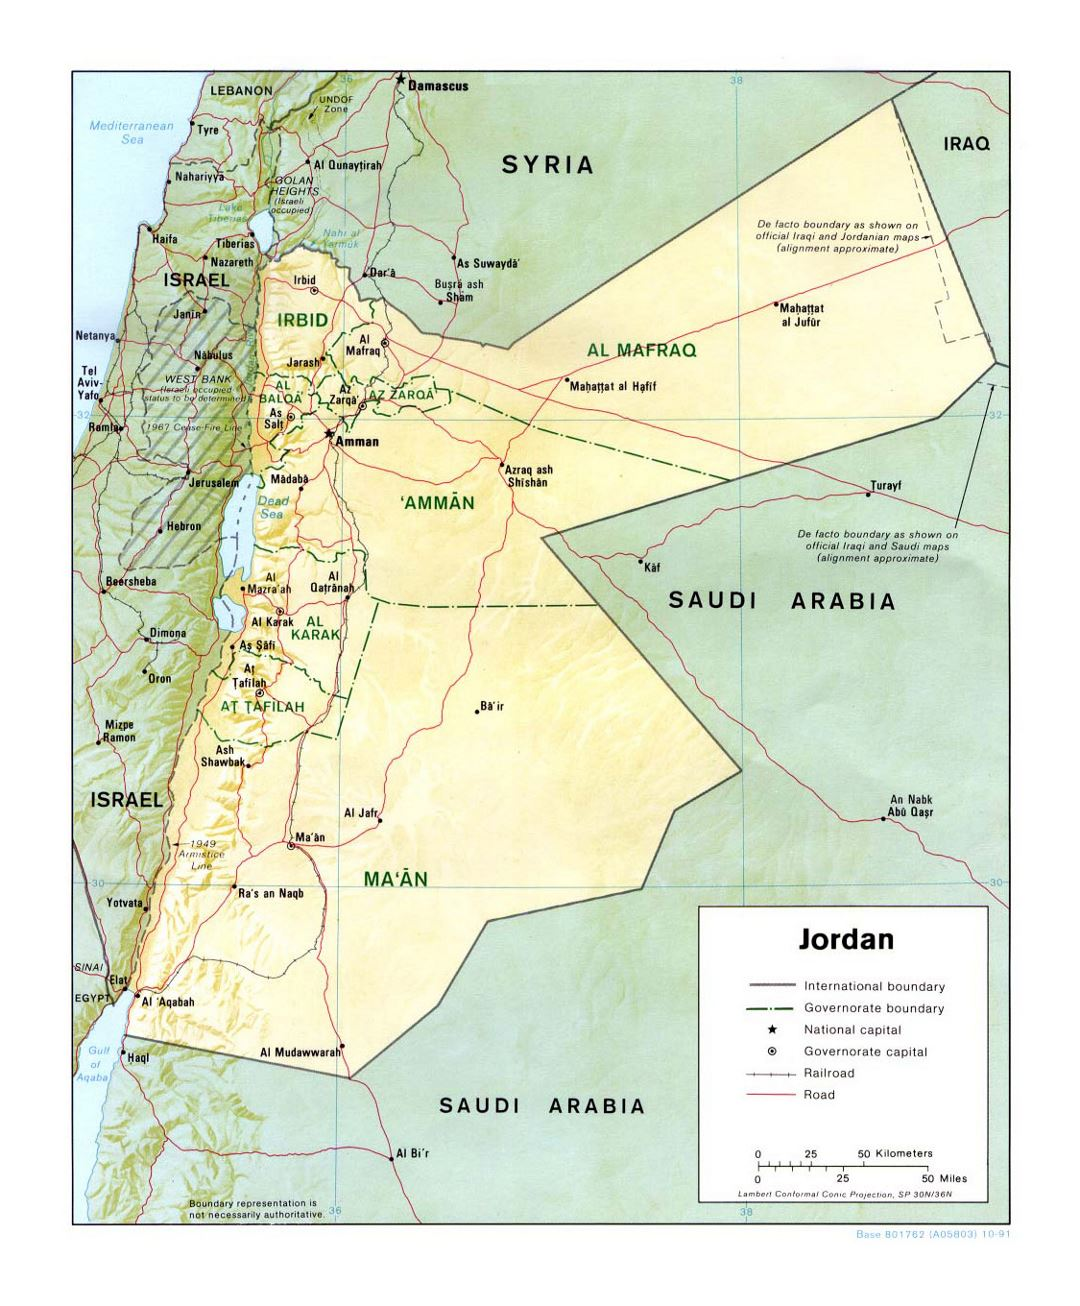 Detailed political and administrative map of Jordan with relief, roads, railroads and major cities - 1991